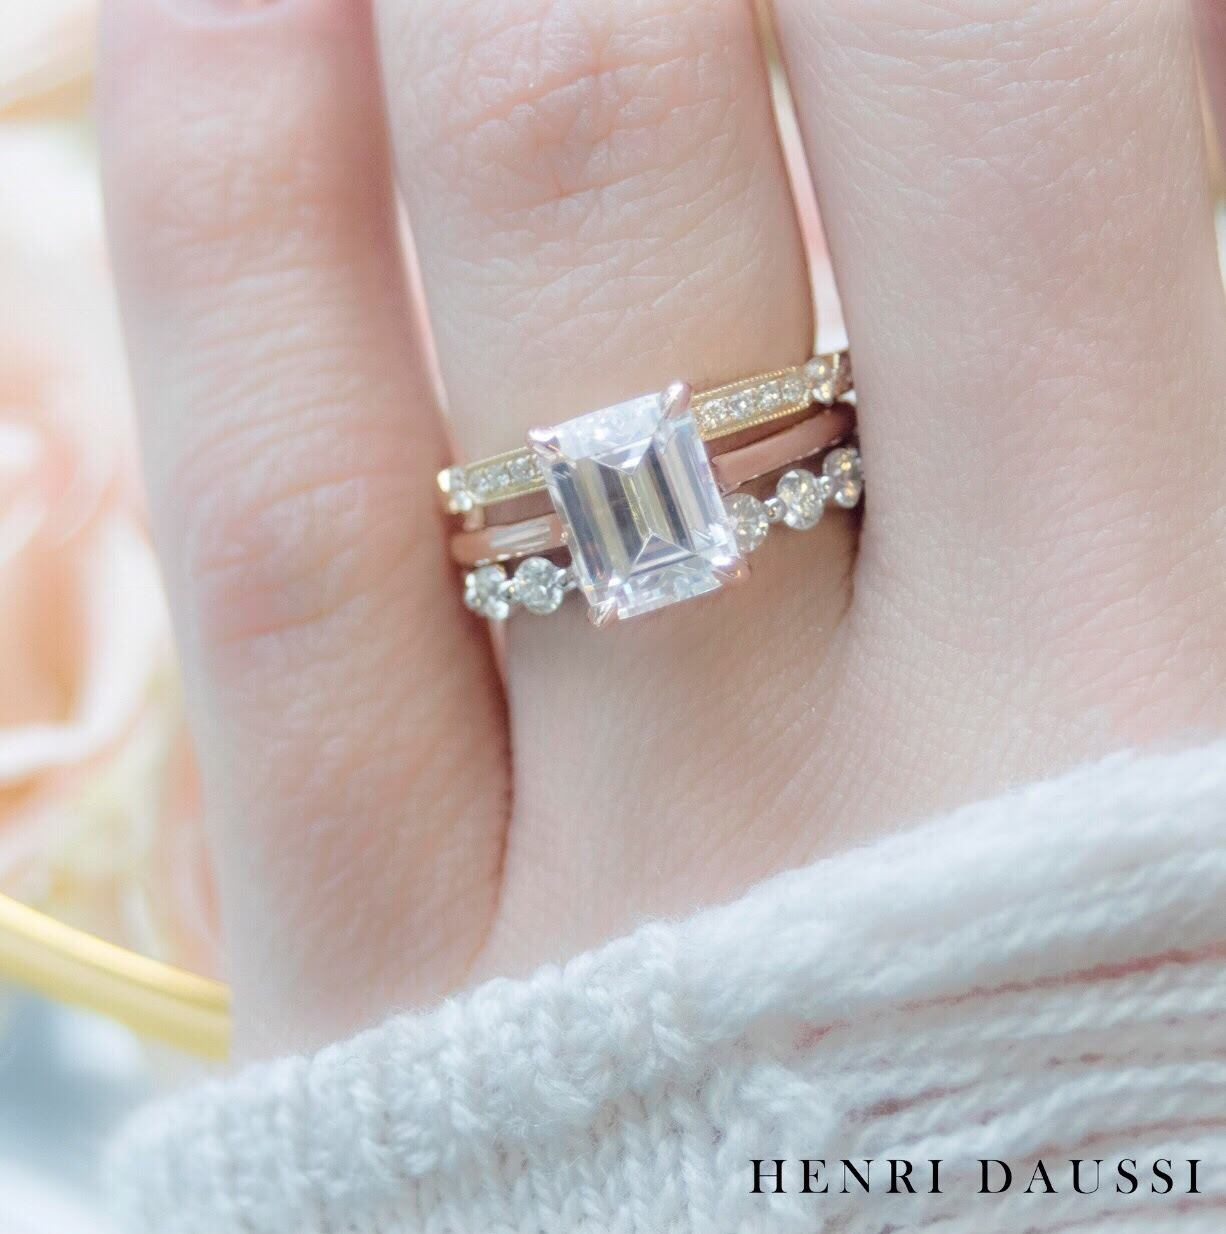 Fourth Generation Jewelers | Siebke Hoyt Jewelers, Cedar With Regard To 2019 Champagne And White Diamond Edge Anniversary Bands In Rose Gold (View 9 of 25)